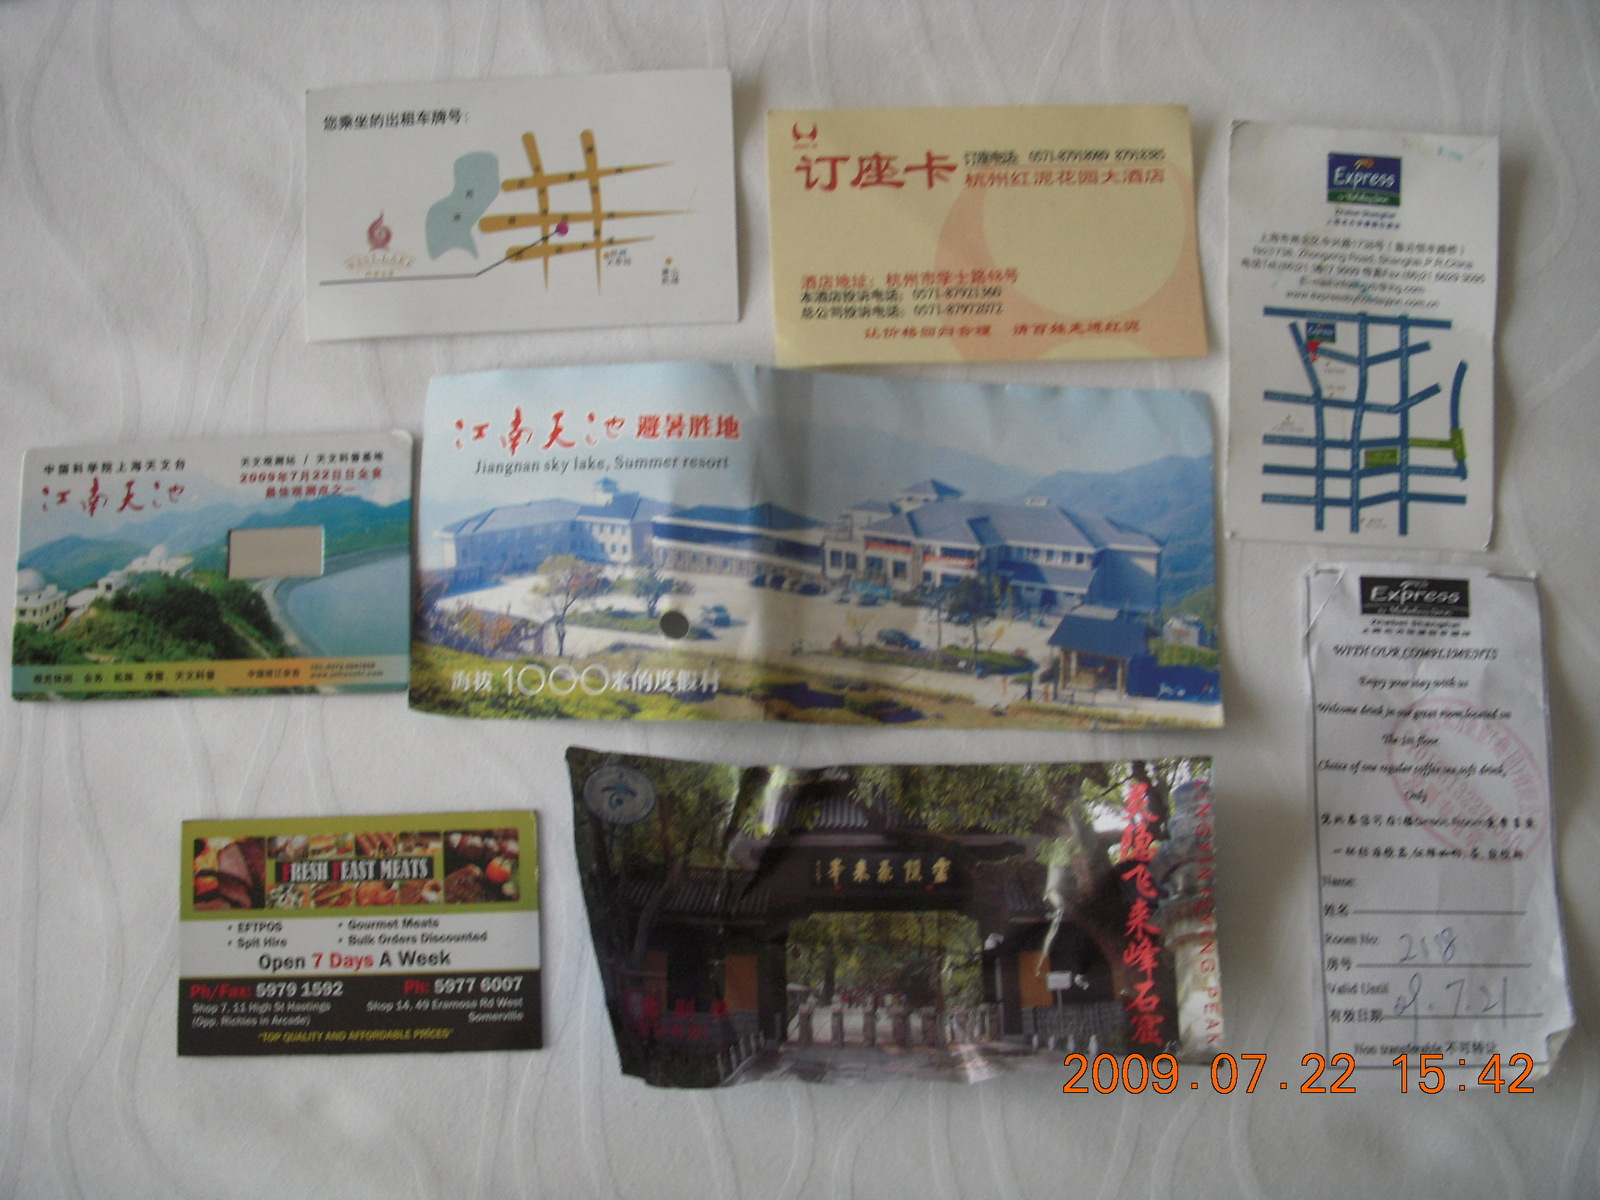 China eclipse - Hangzhou tickets and receipts